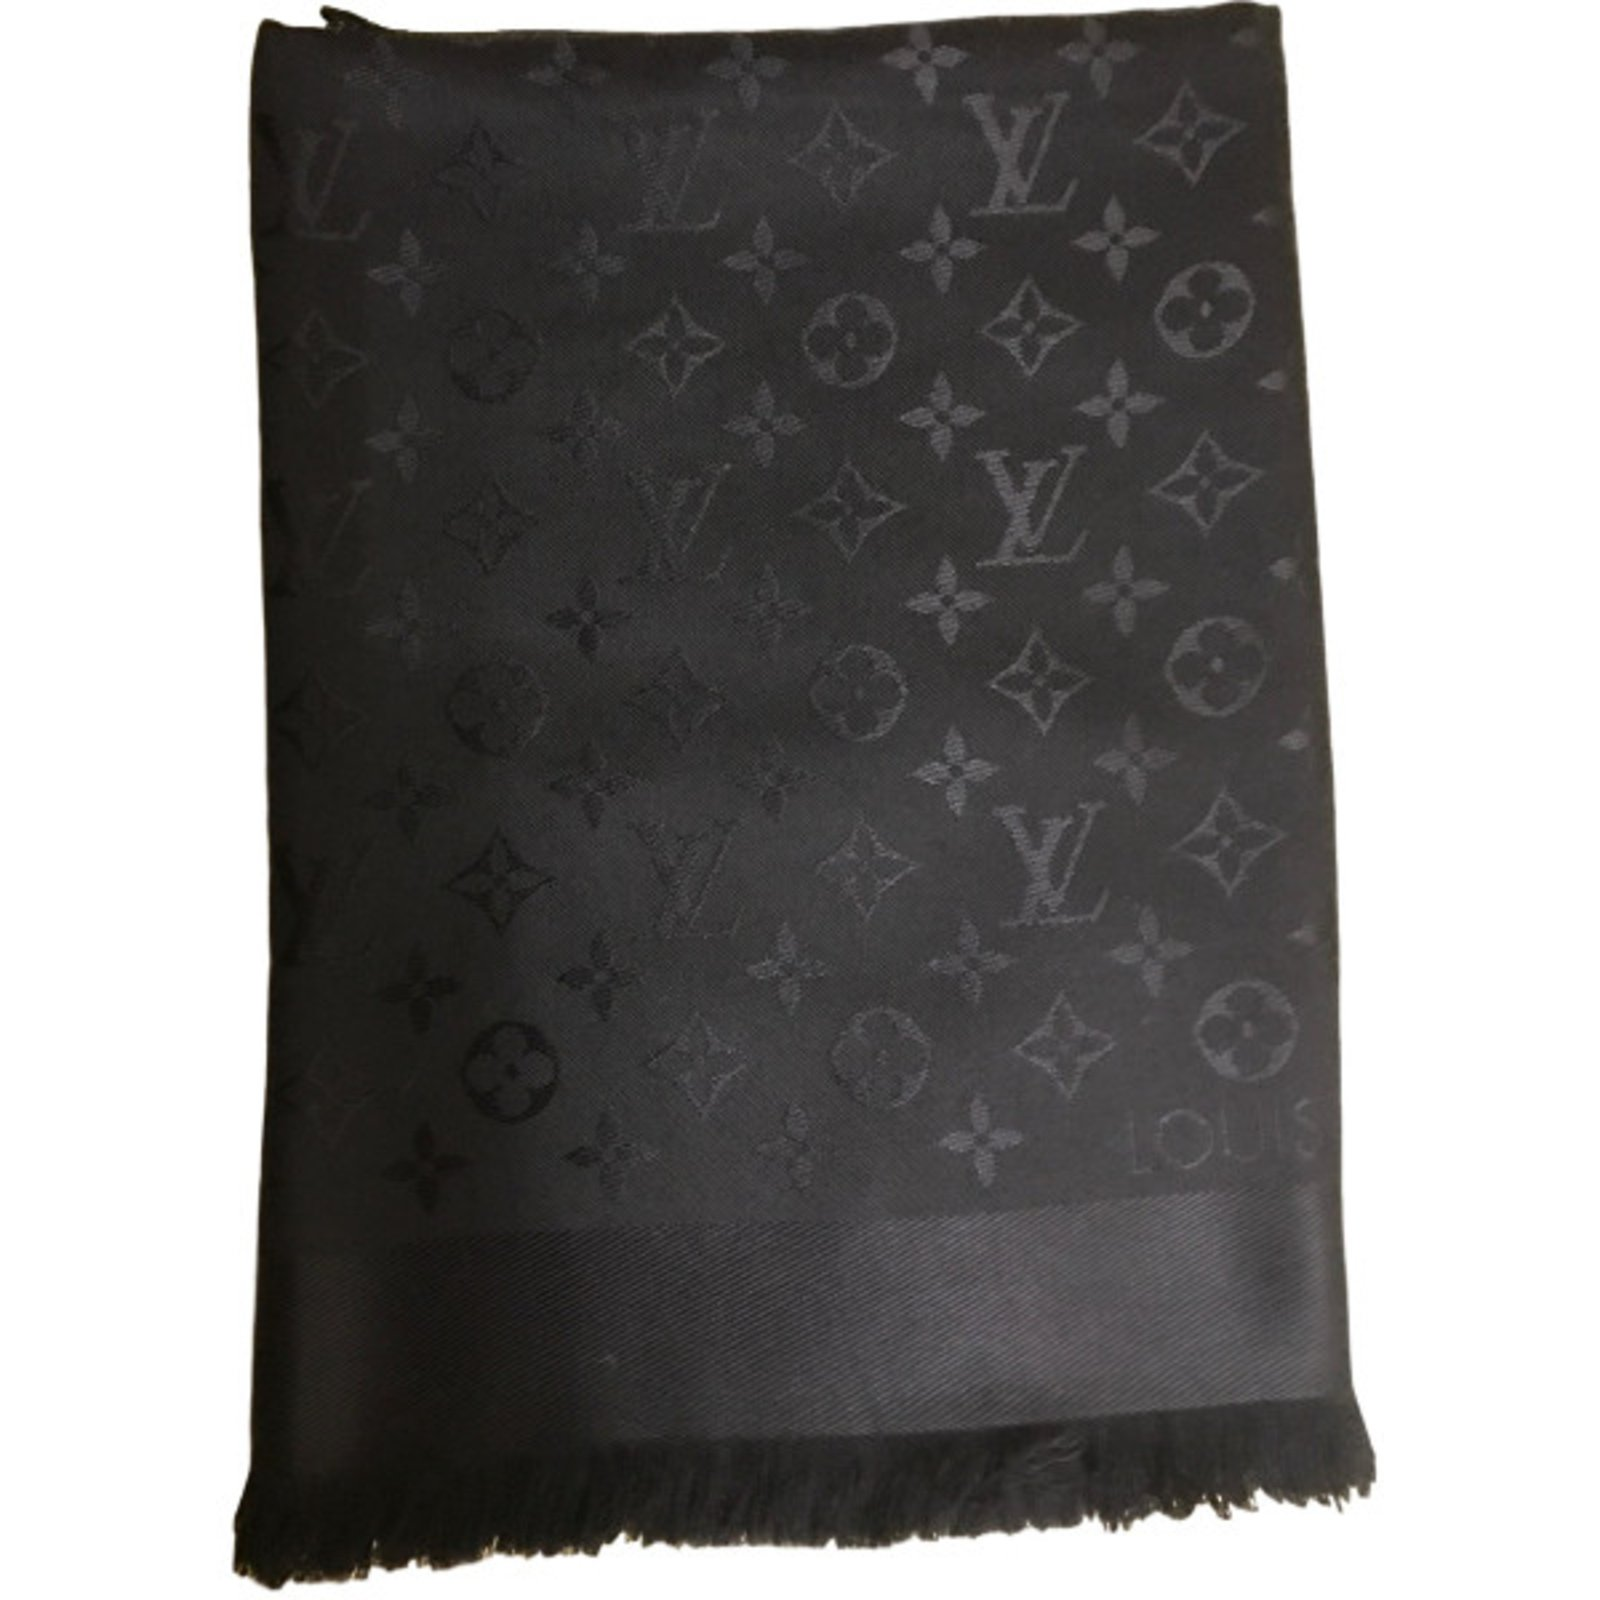 398090a0acf4 Foulards Louis Vuitton châle monogram Louis Vuitton Soie Noir ref.36739. ECHARPE  LOUIS VUITTON